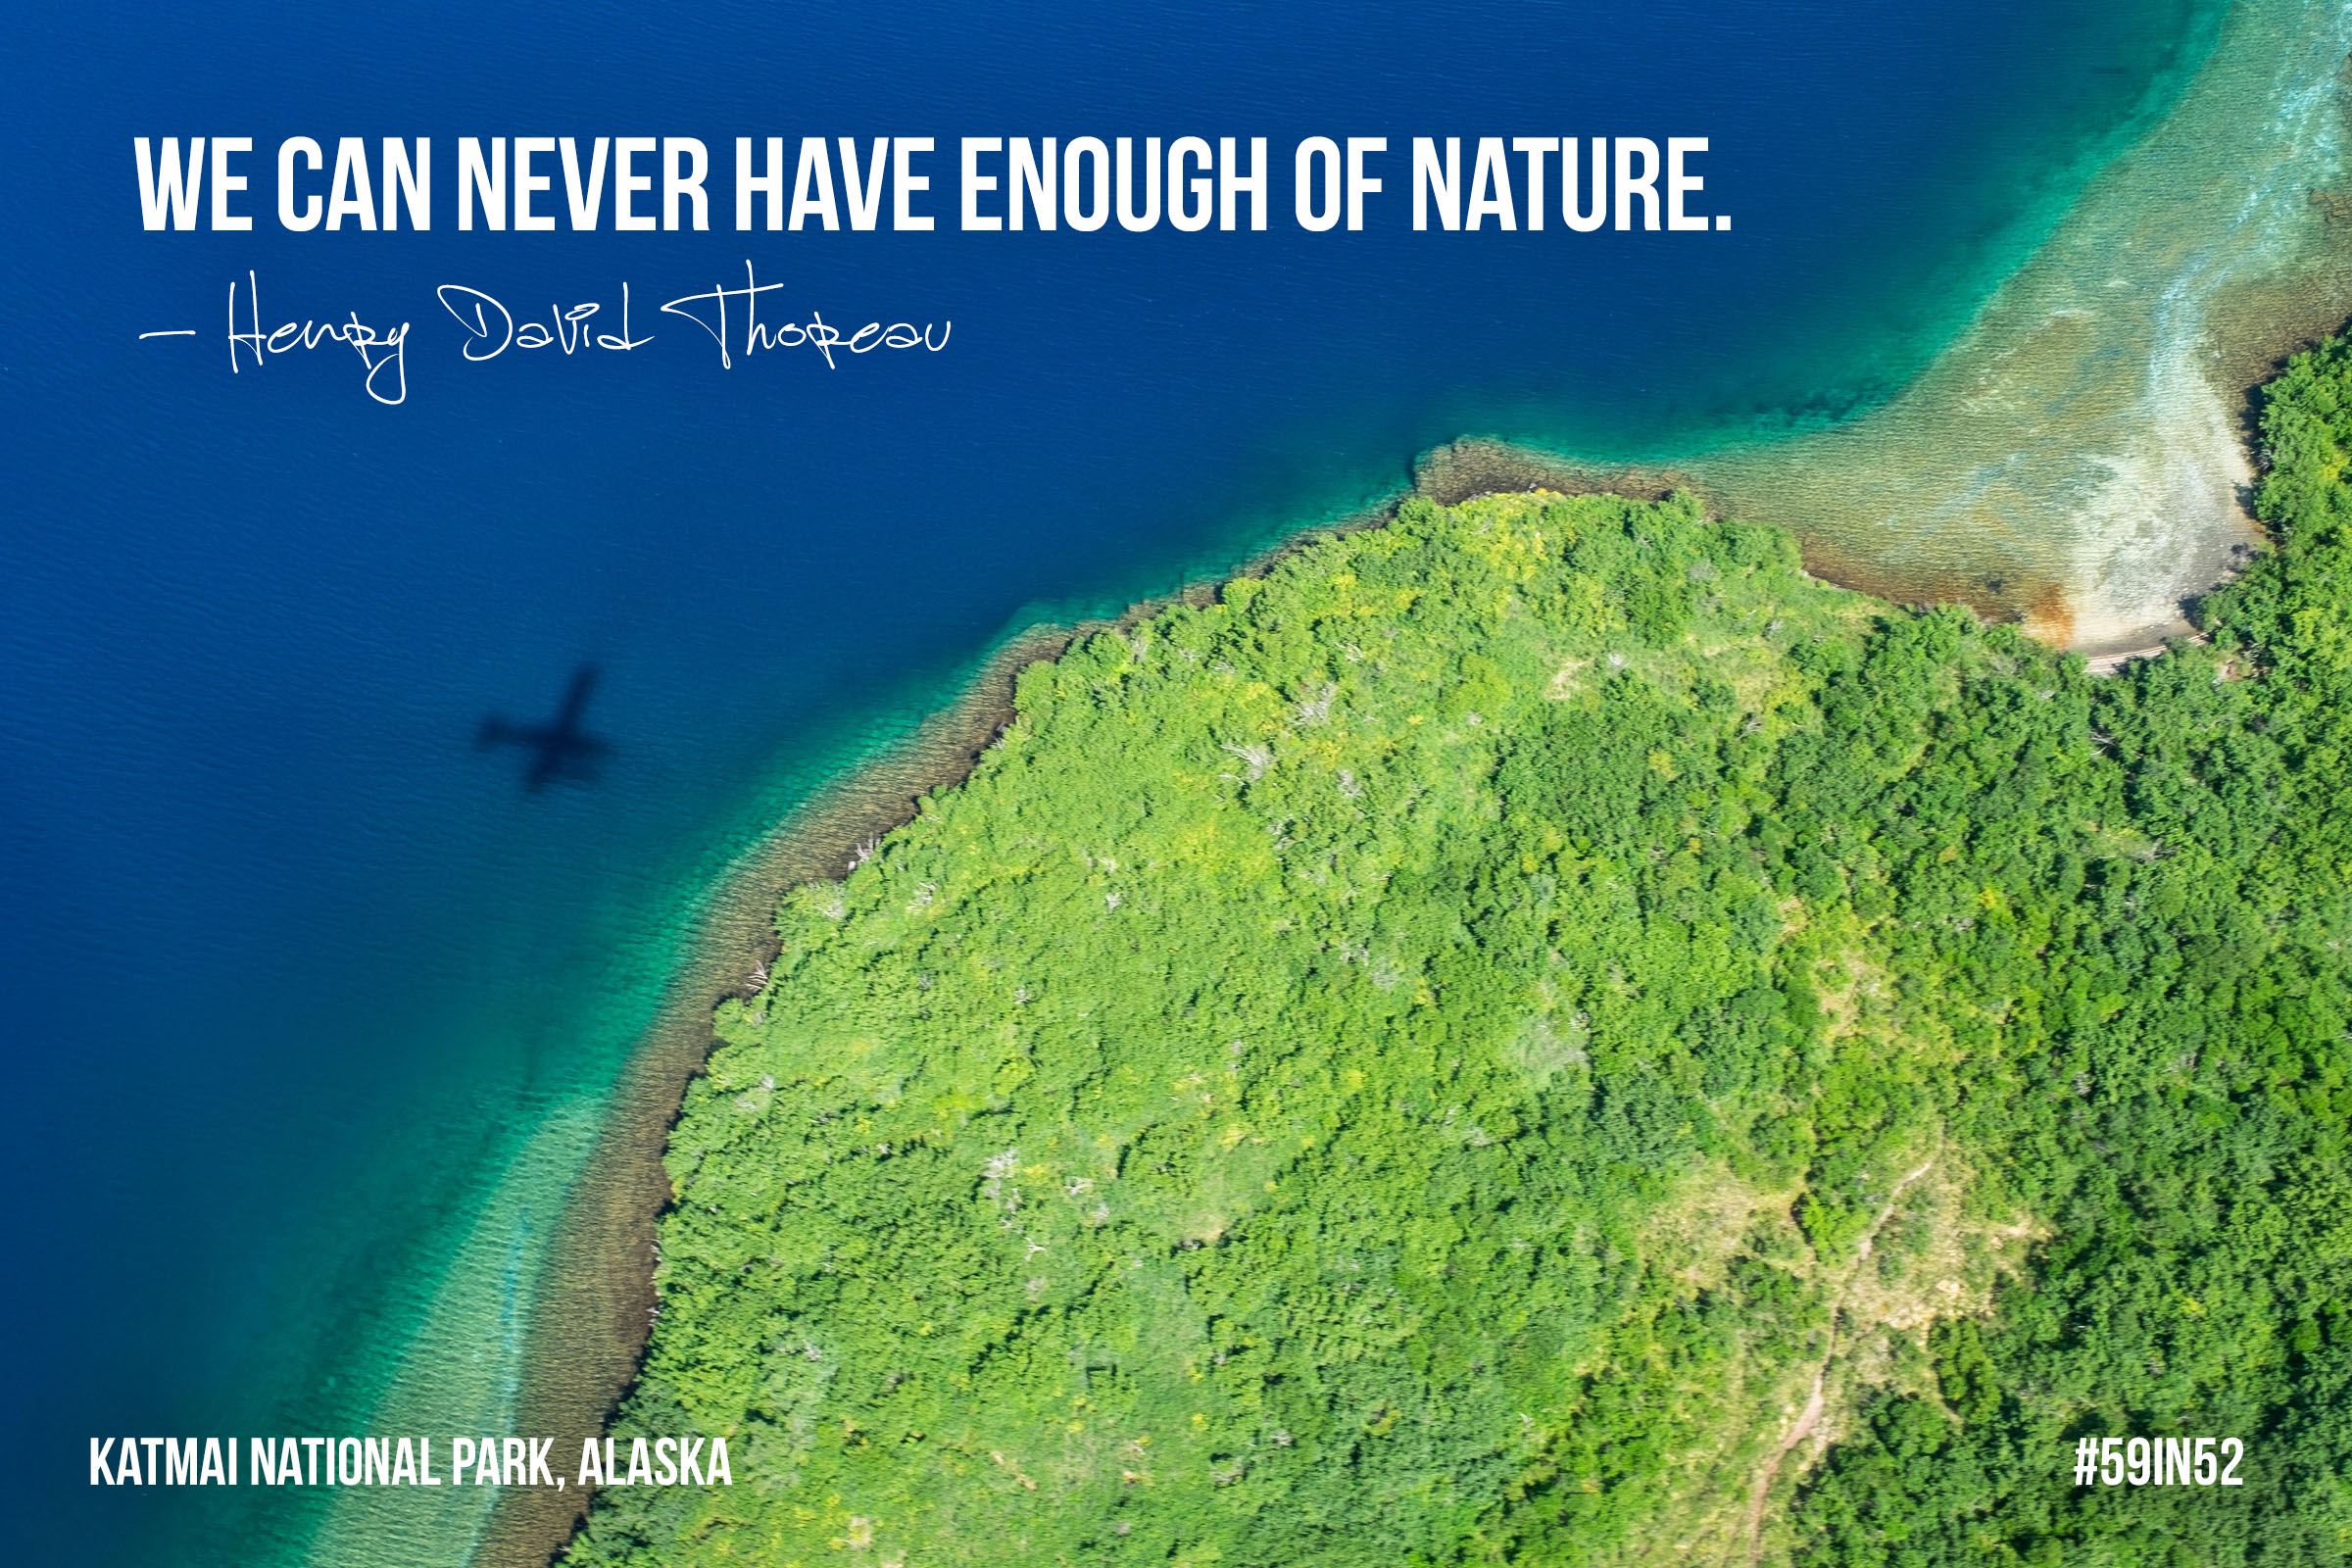 """We can never have enough of nature."" Henry David Thoreau"